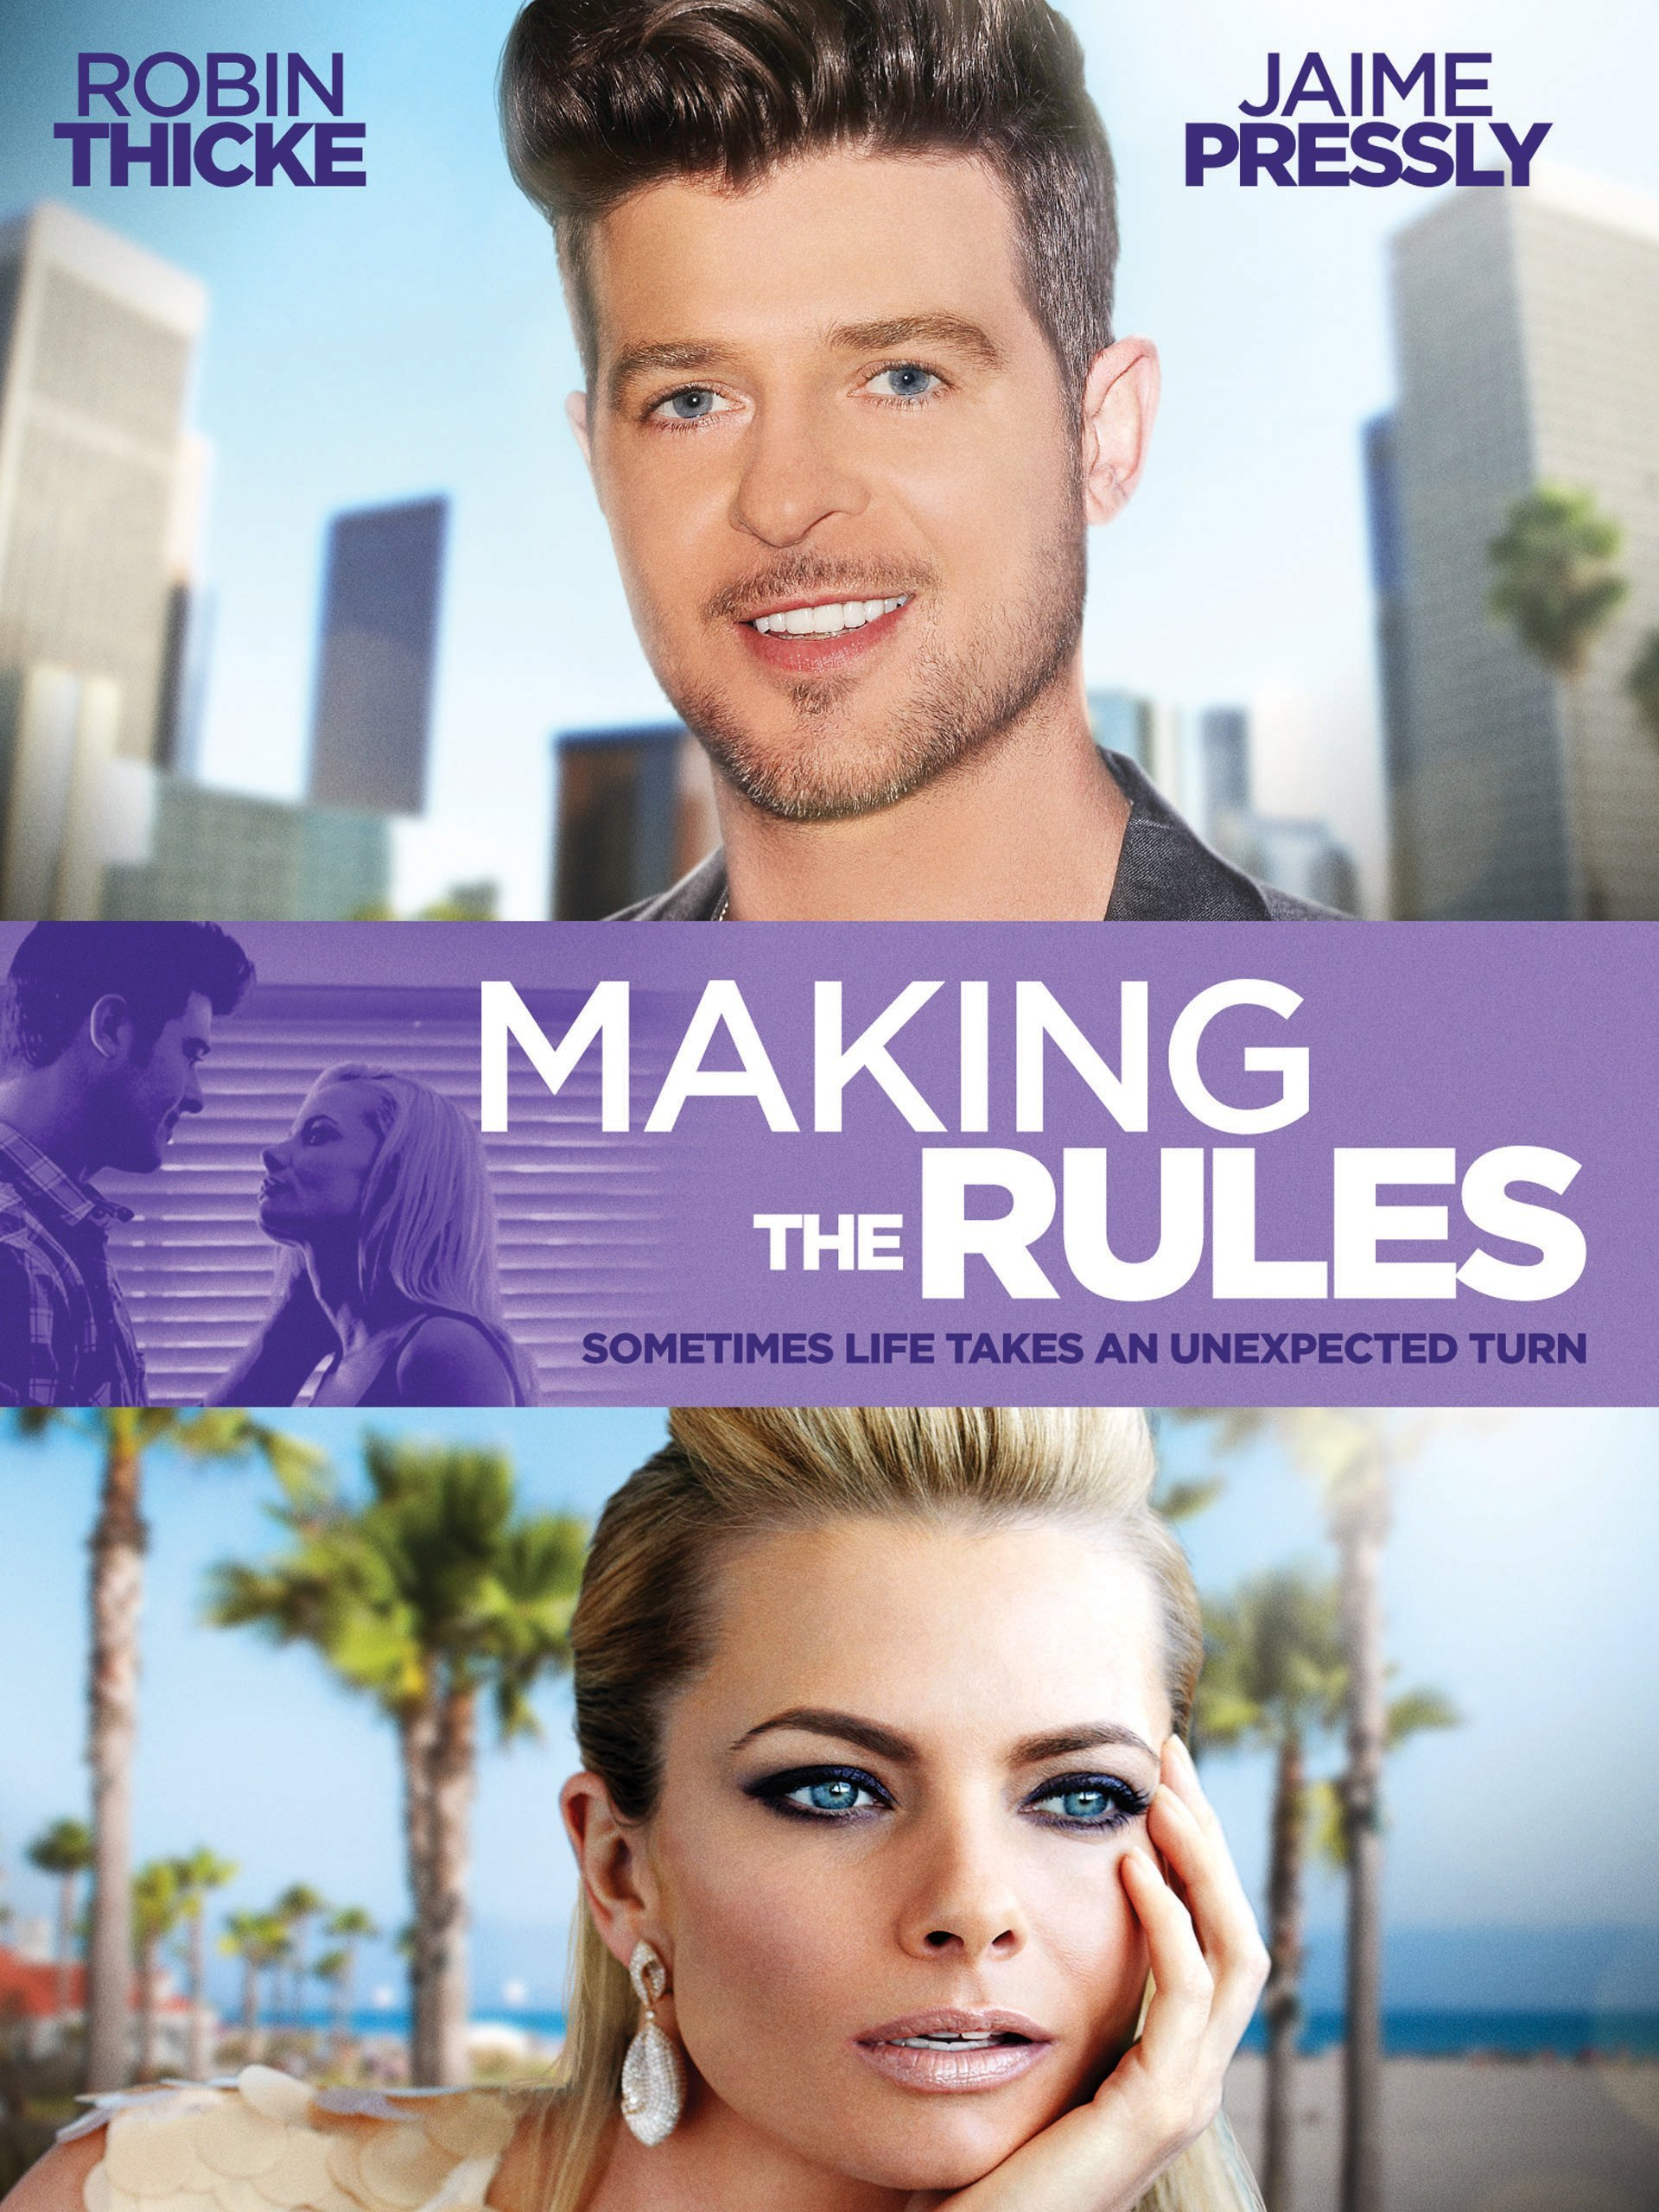 Amazoncom Making The Rules Robin Thicke Jaime Pressly Joey